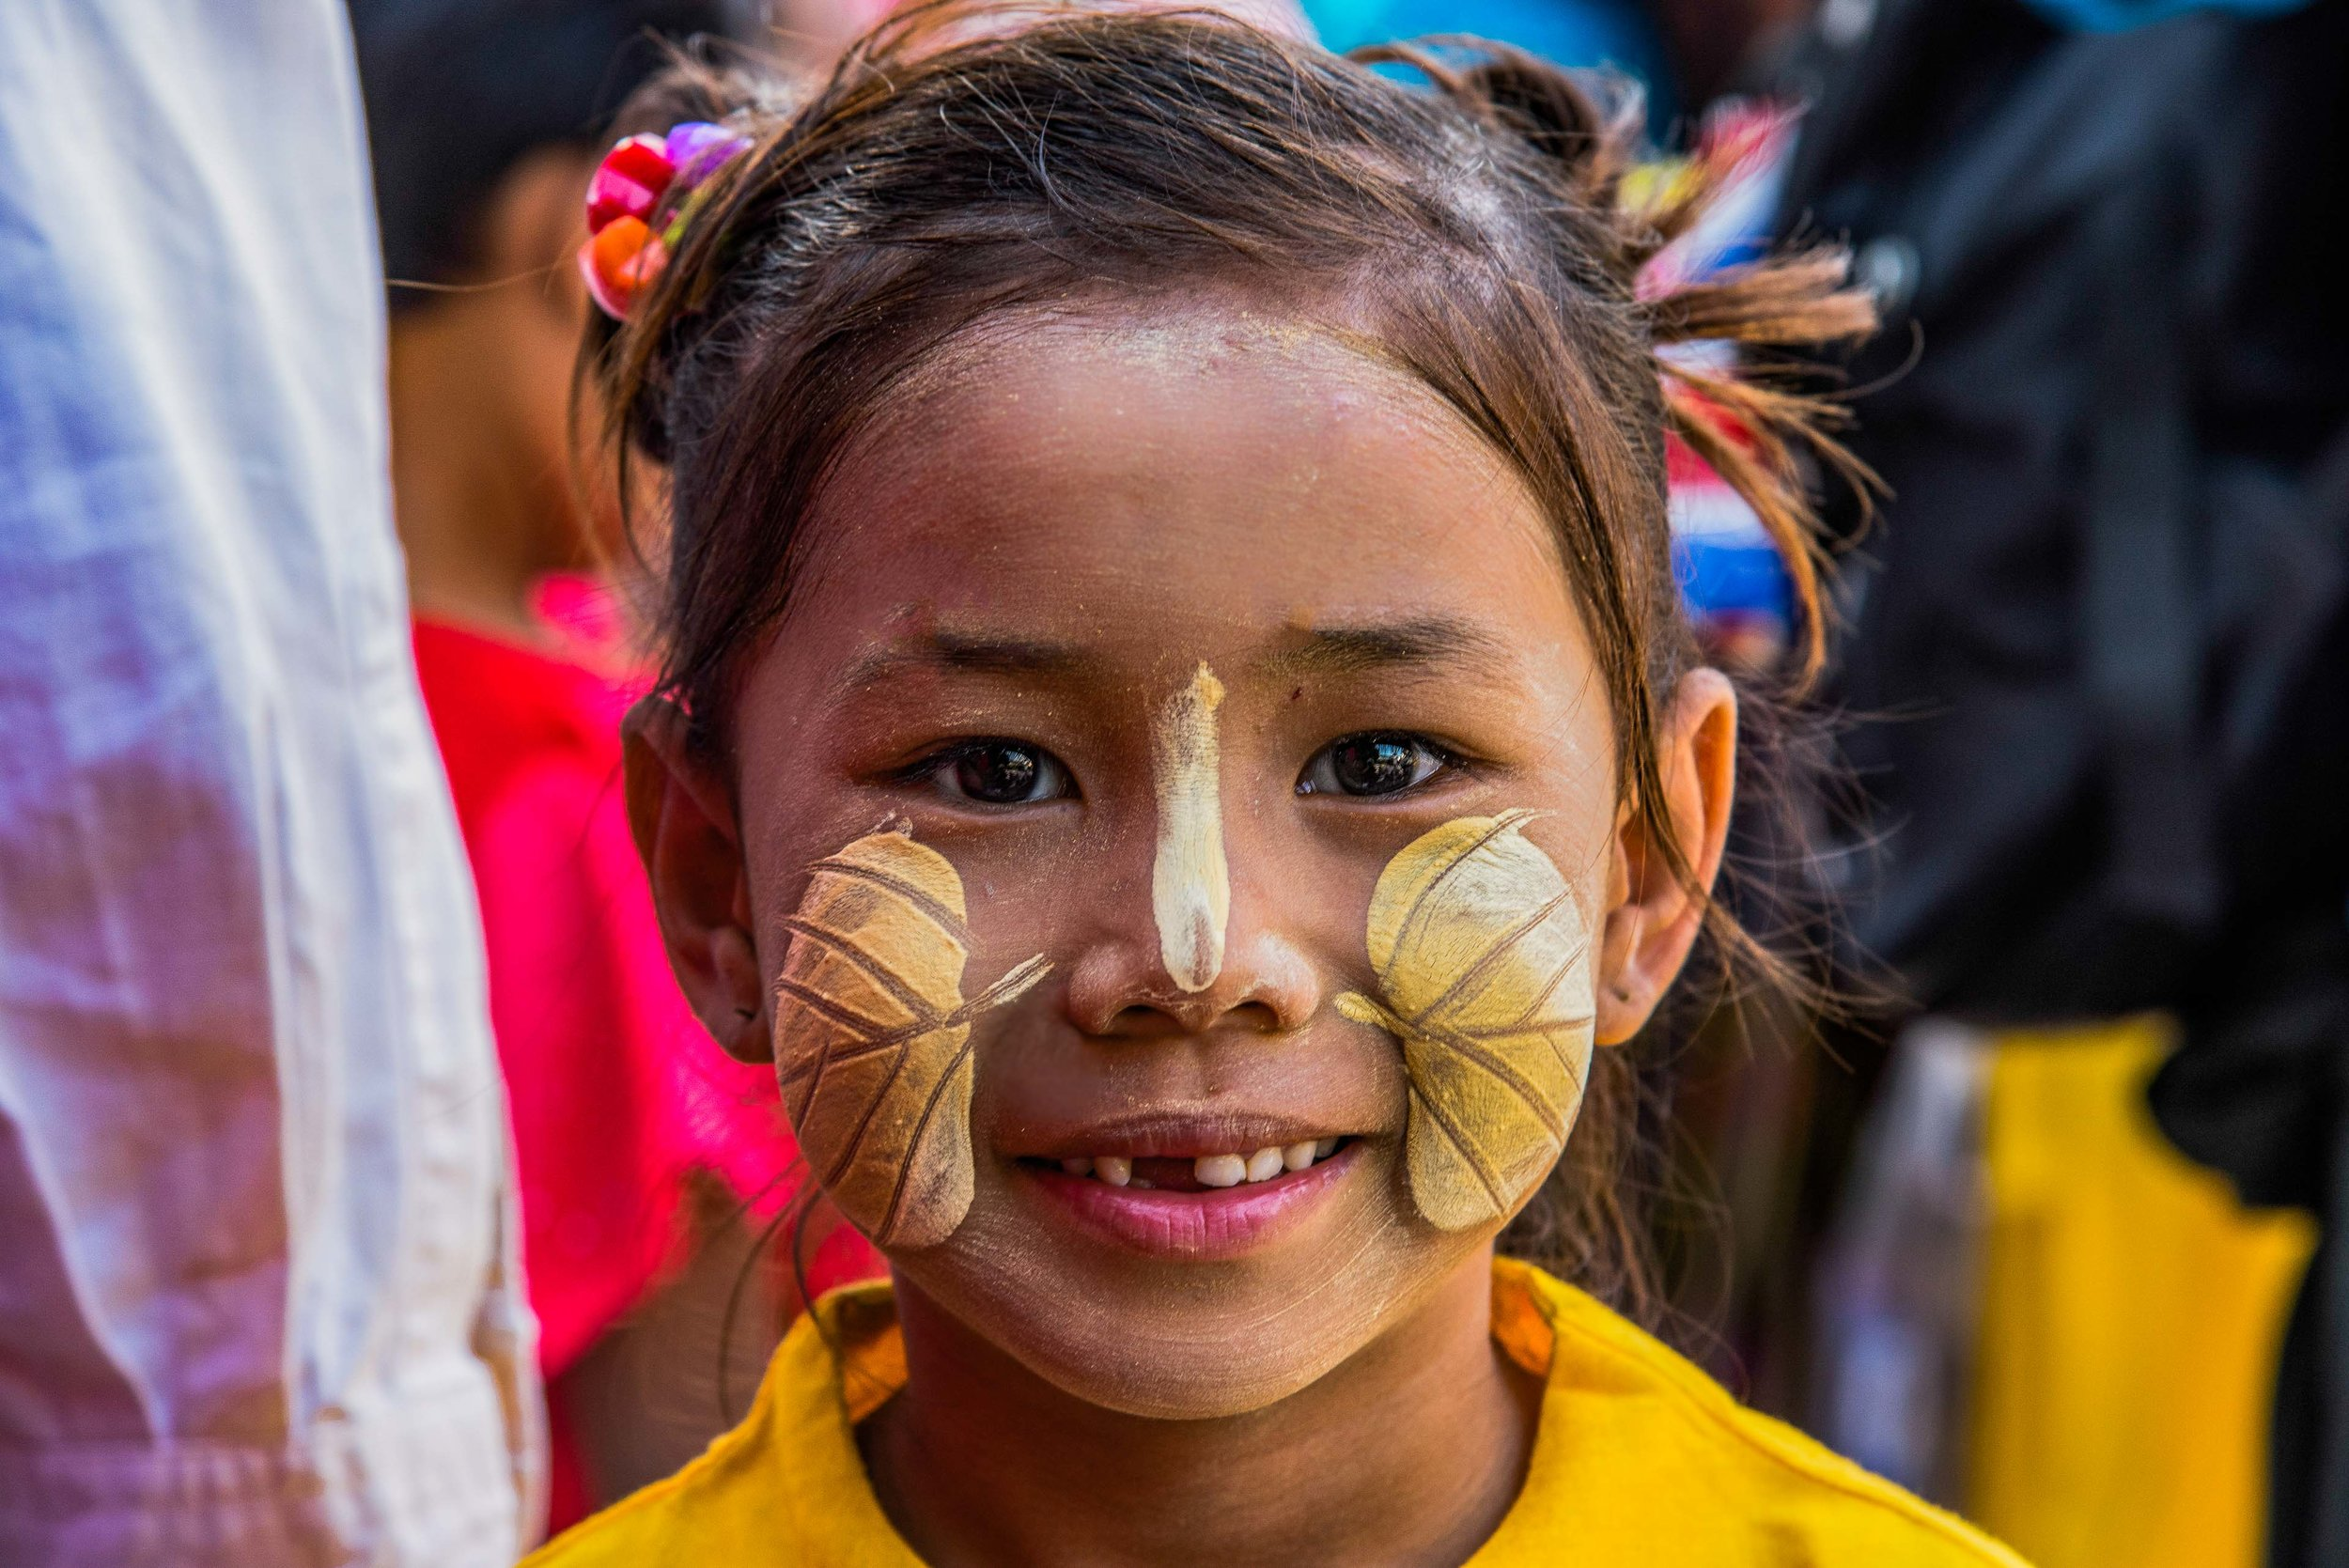 Thanakha Face Paint. Mandalay, Myanmar 2015